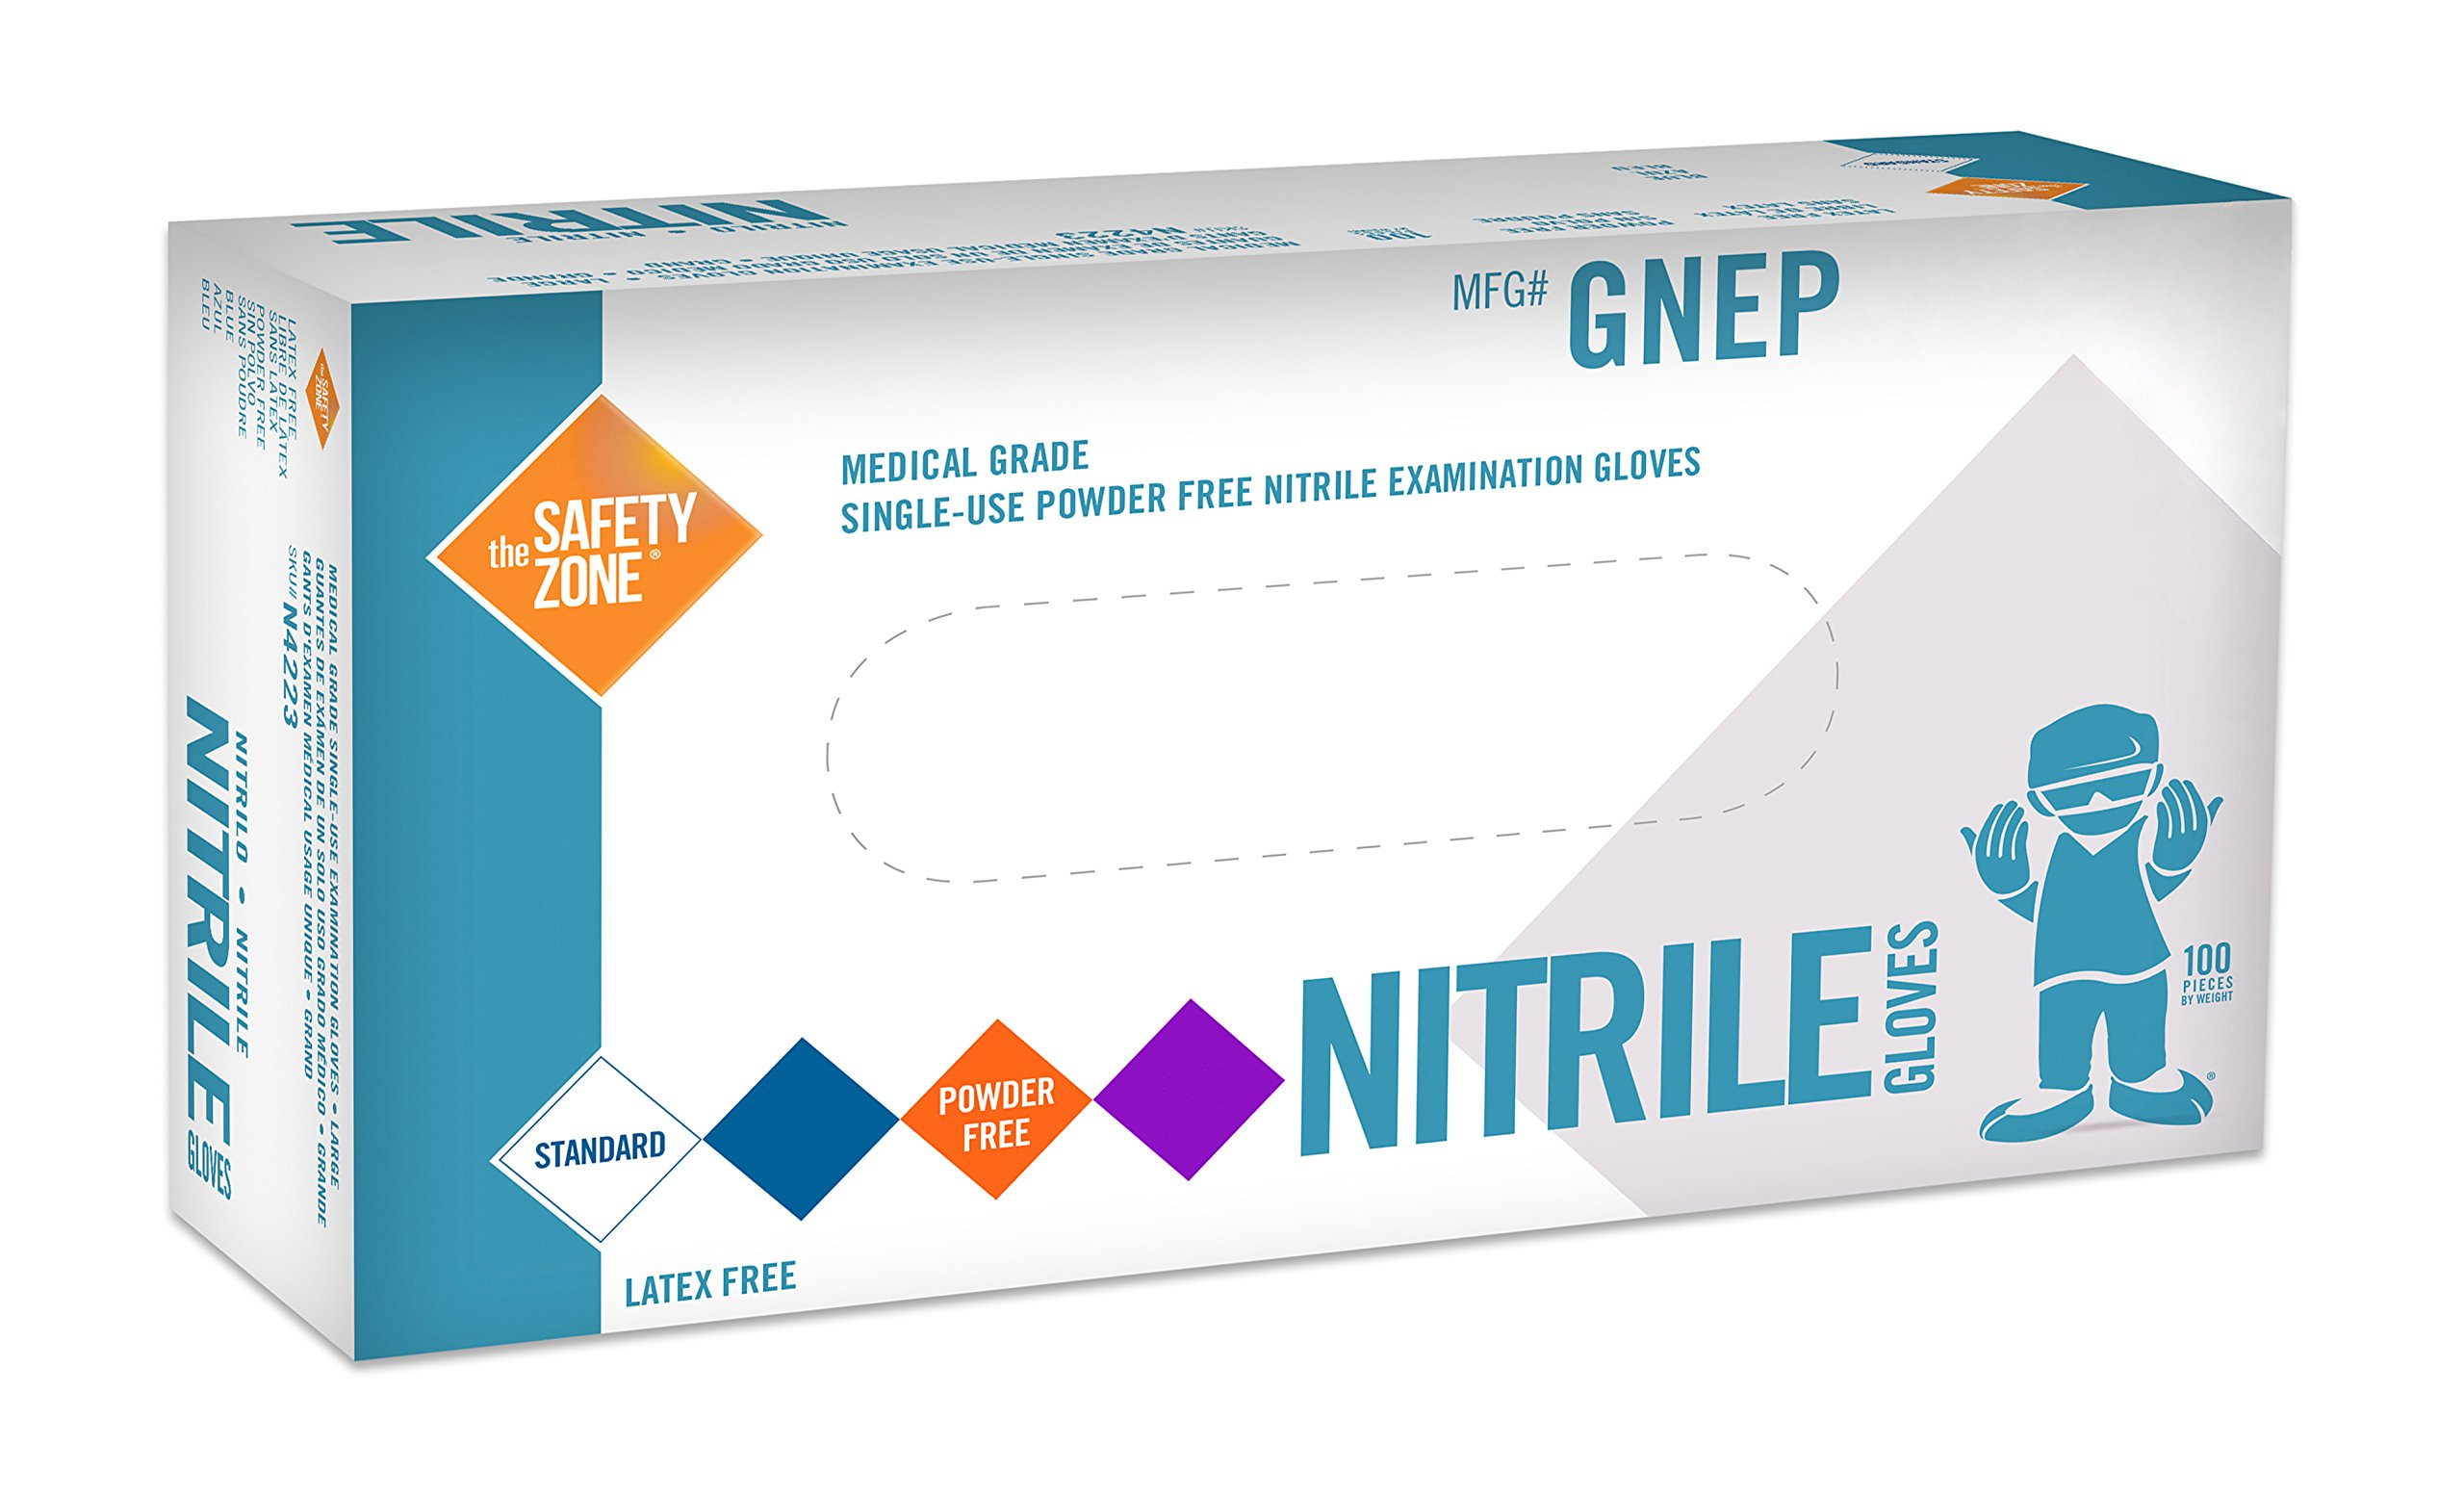 Black Nitrile Exam Gloves - Medical Grade, Disposable, Powder Free, Latex Rubber Free, Heavy Duty, Textured, Non Sterile, Work, Medical, Food Safe, Cleaning, Wholesale, Size Large (Case of 1000) by The Safety Zone (Image #2)